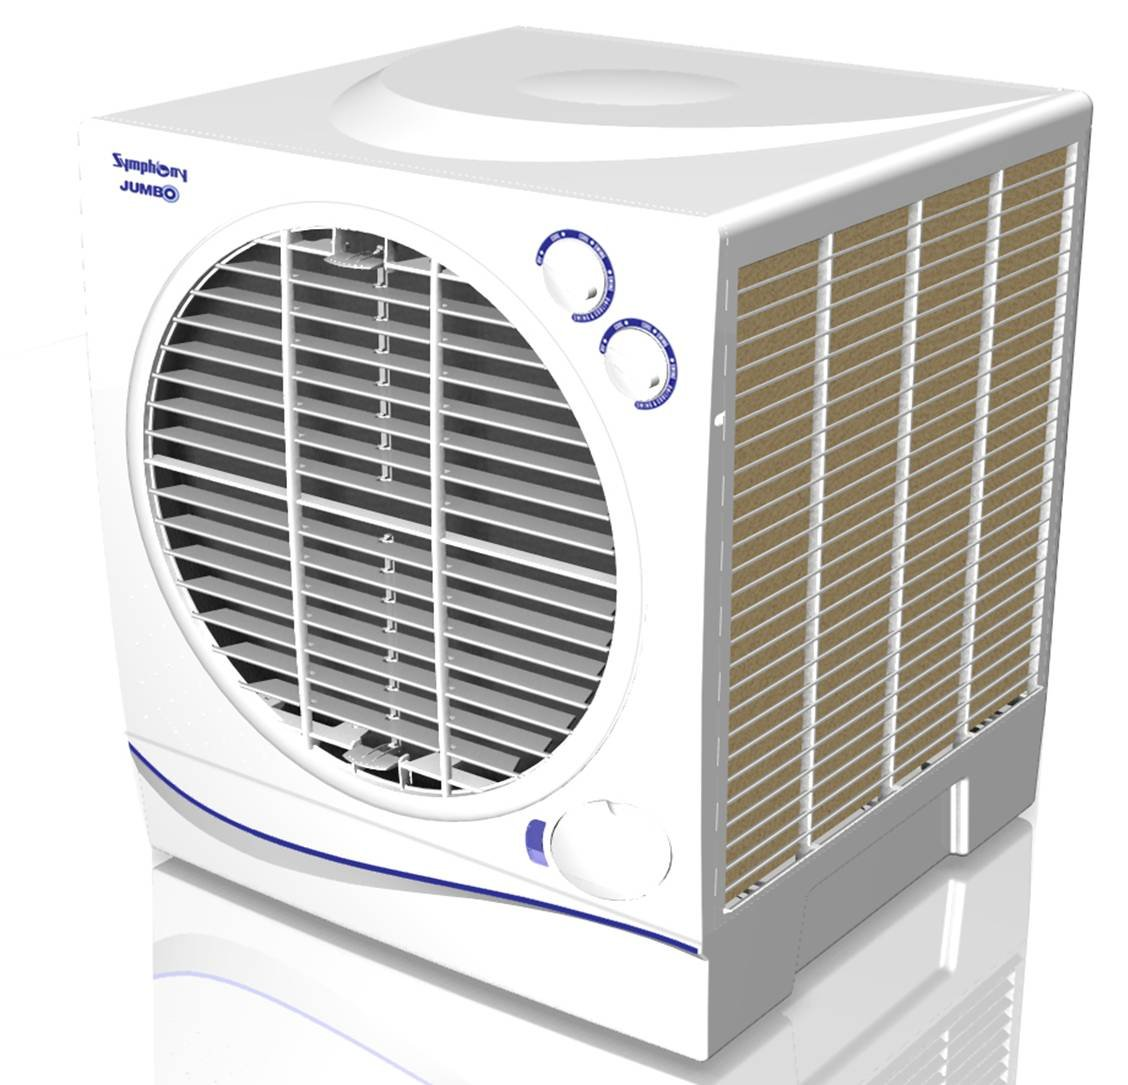 Air To Air Cooling : Buy window mounted air cooler from siboly